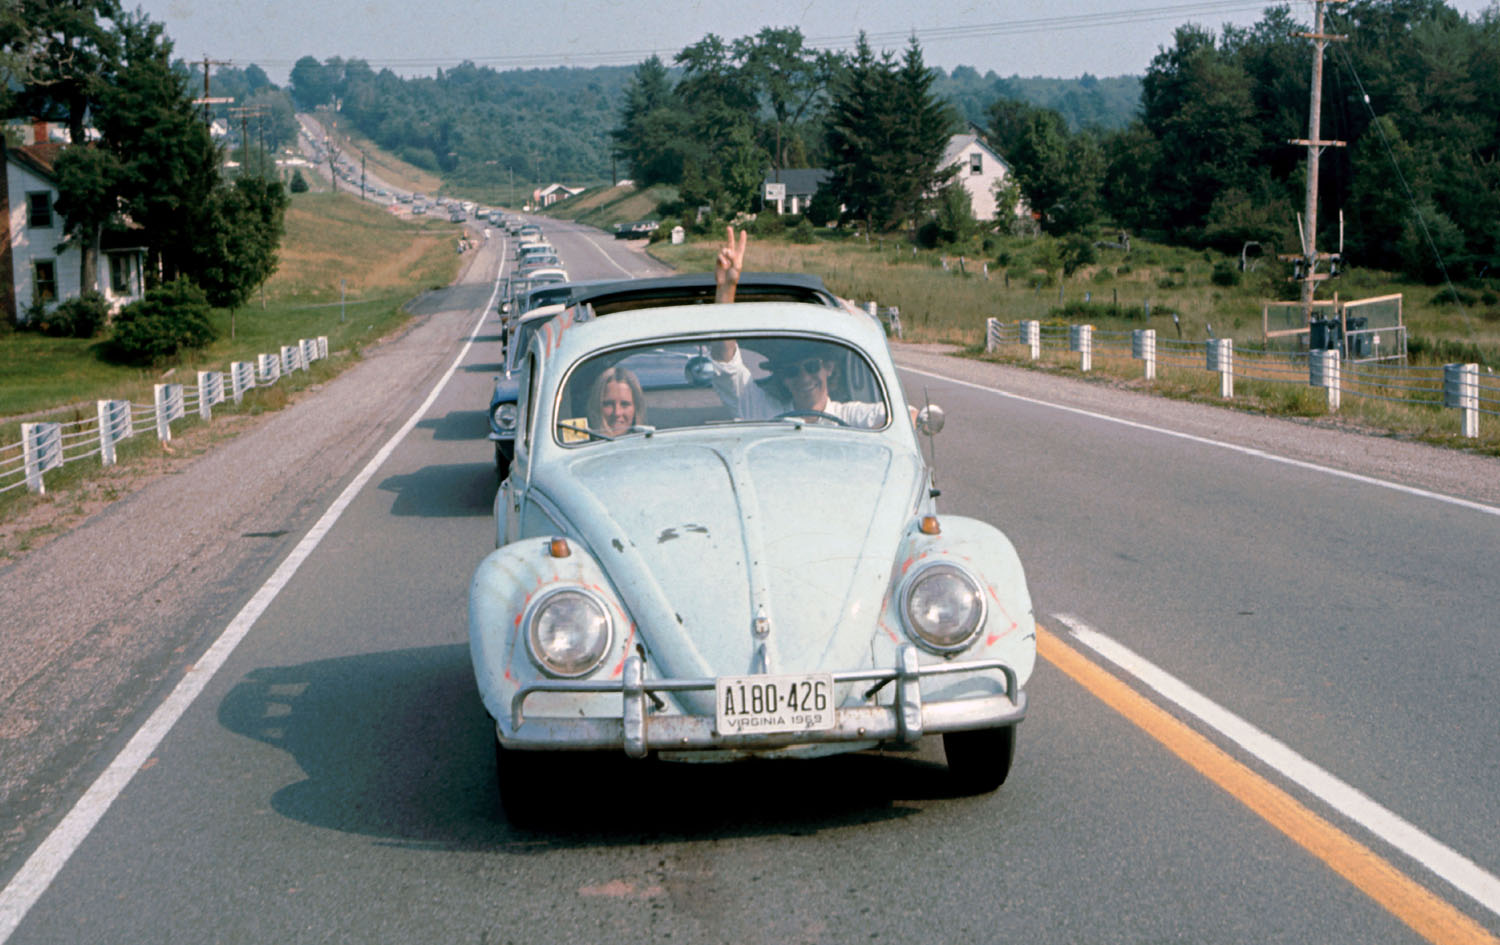 A man drives a Volkswagen Beetle ahead of a long line of cars on the way to the Woodstock Music & Art Fair, while flashing a peace sign through the sunroof of the car, in Bethel, New York, in August 1969. Ralph Ackerman / Getty